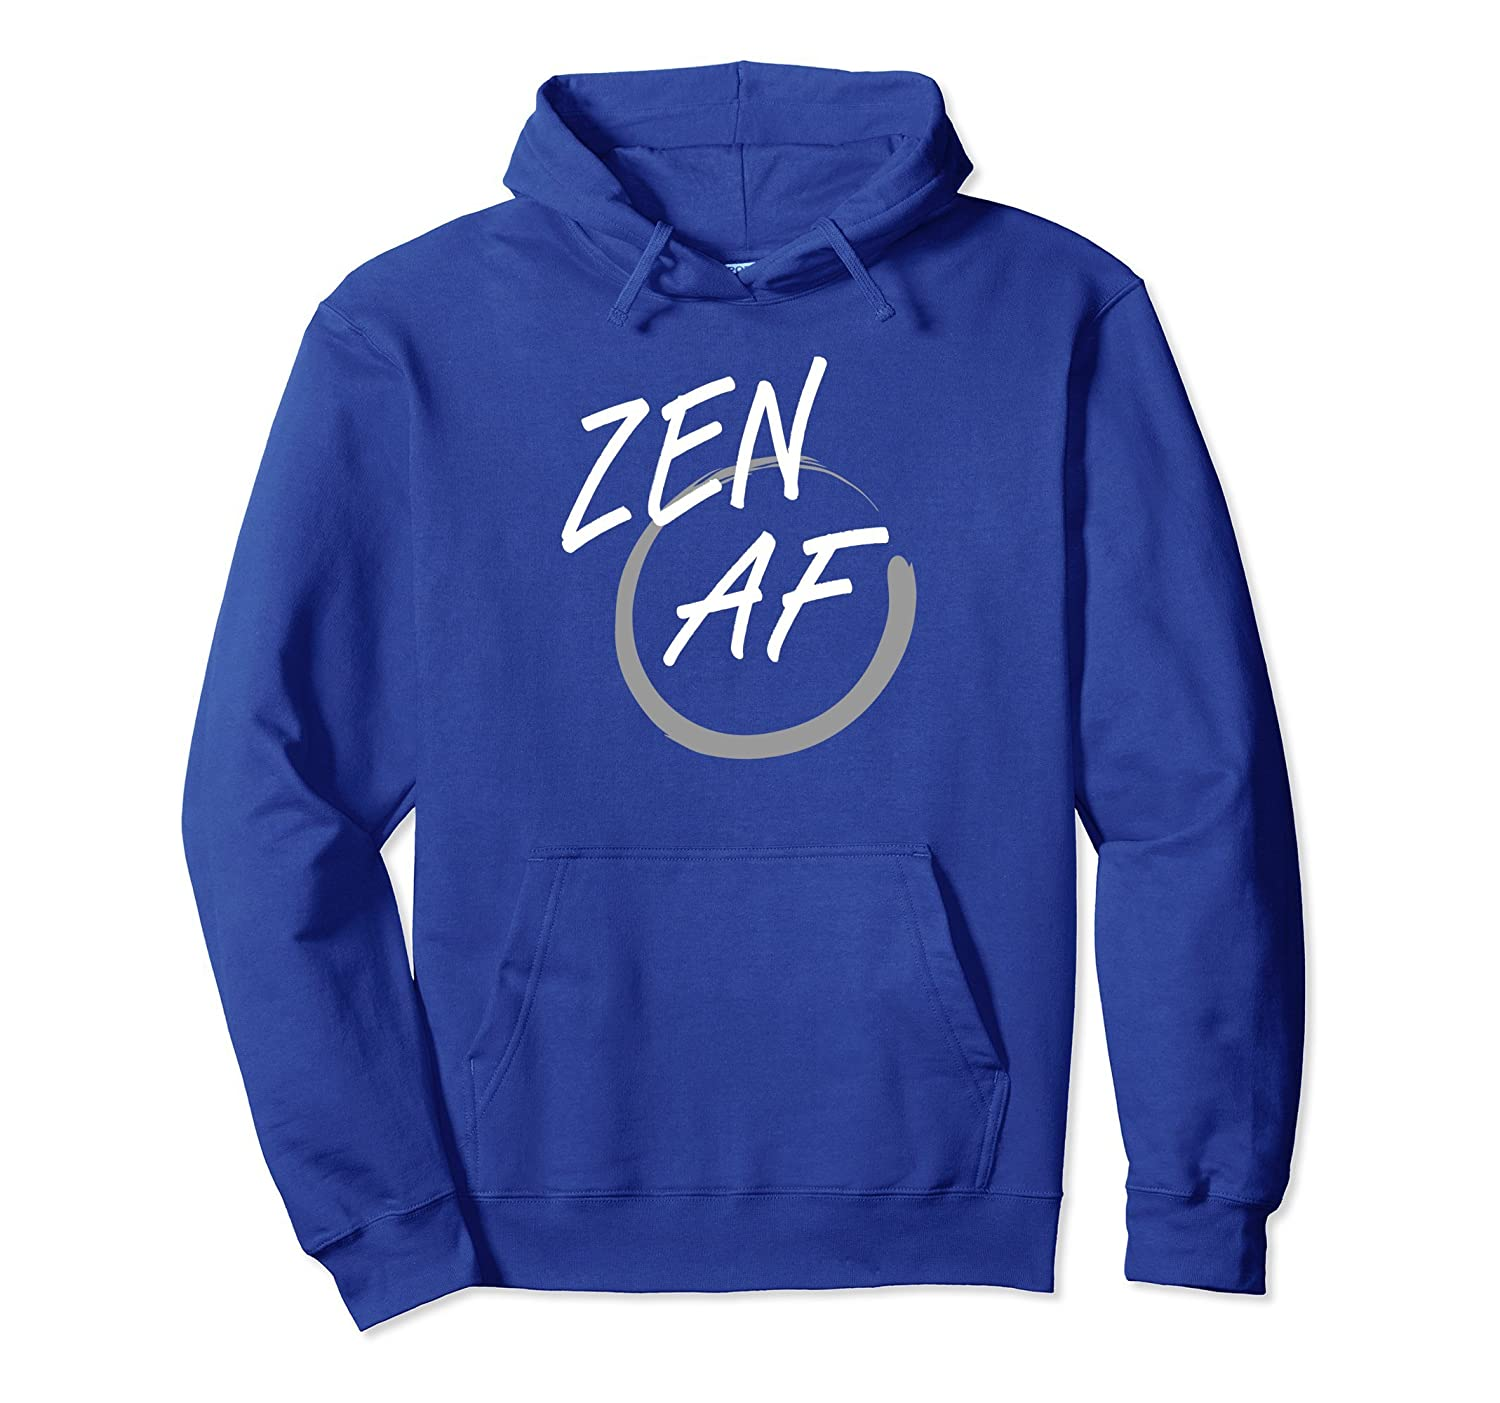 Zen AF Meditation Enlightenment Mood Hoodie-alottee gift